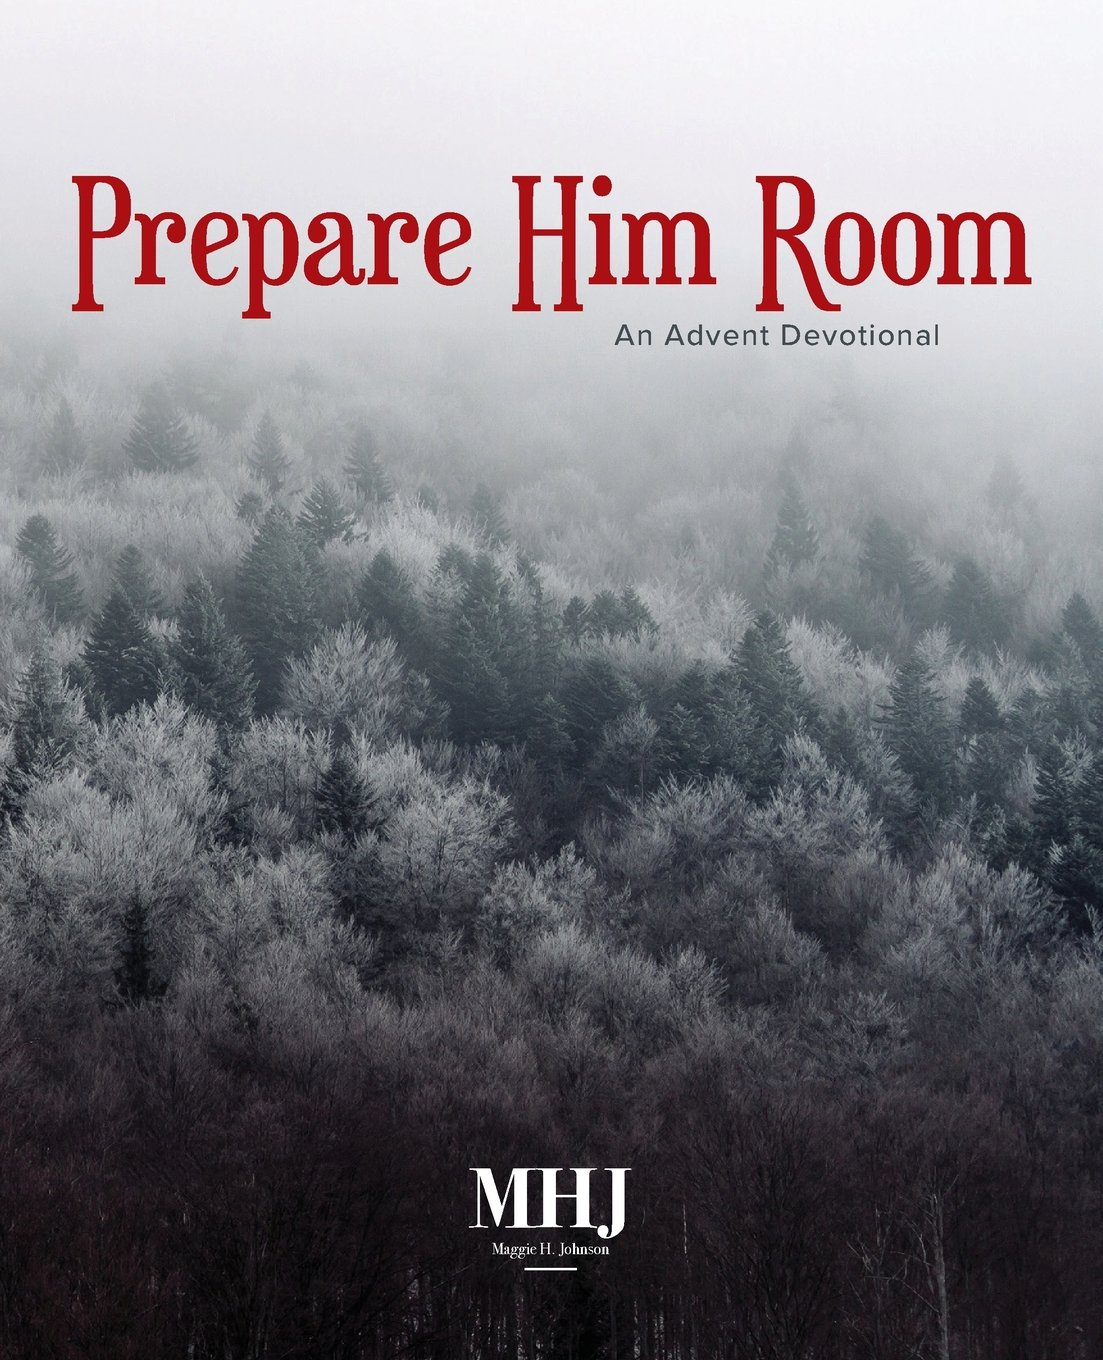 Prepare Him Room: An Advent Devotional